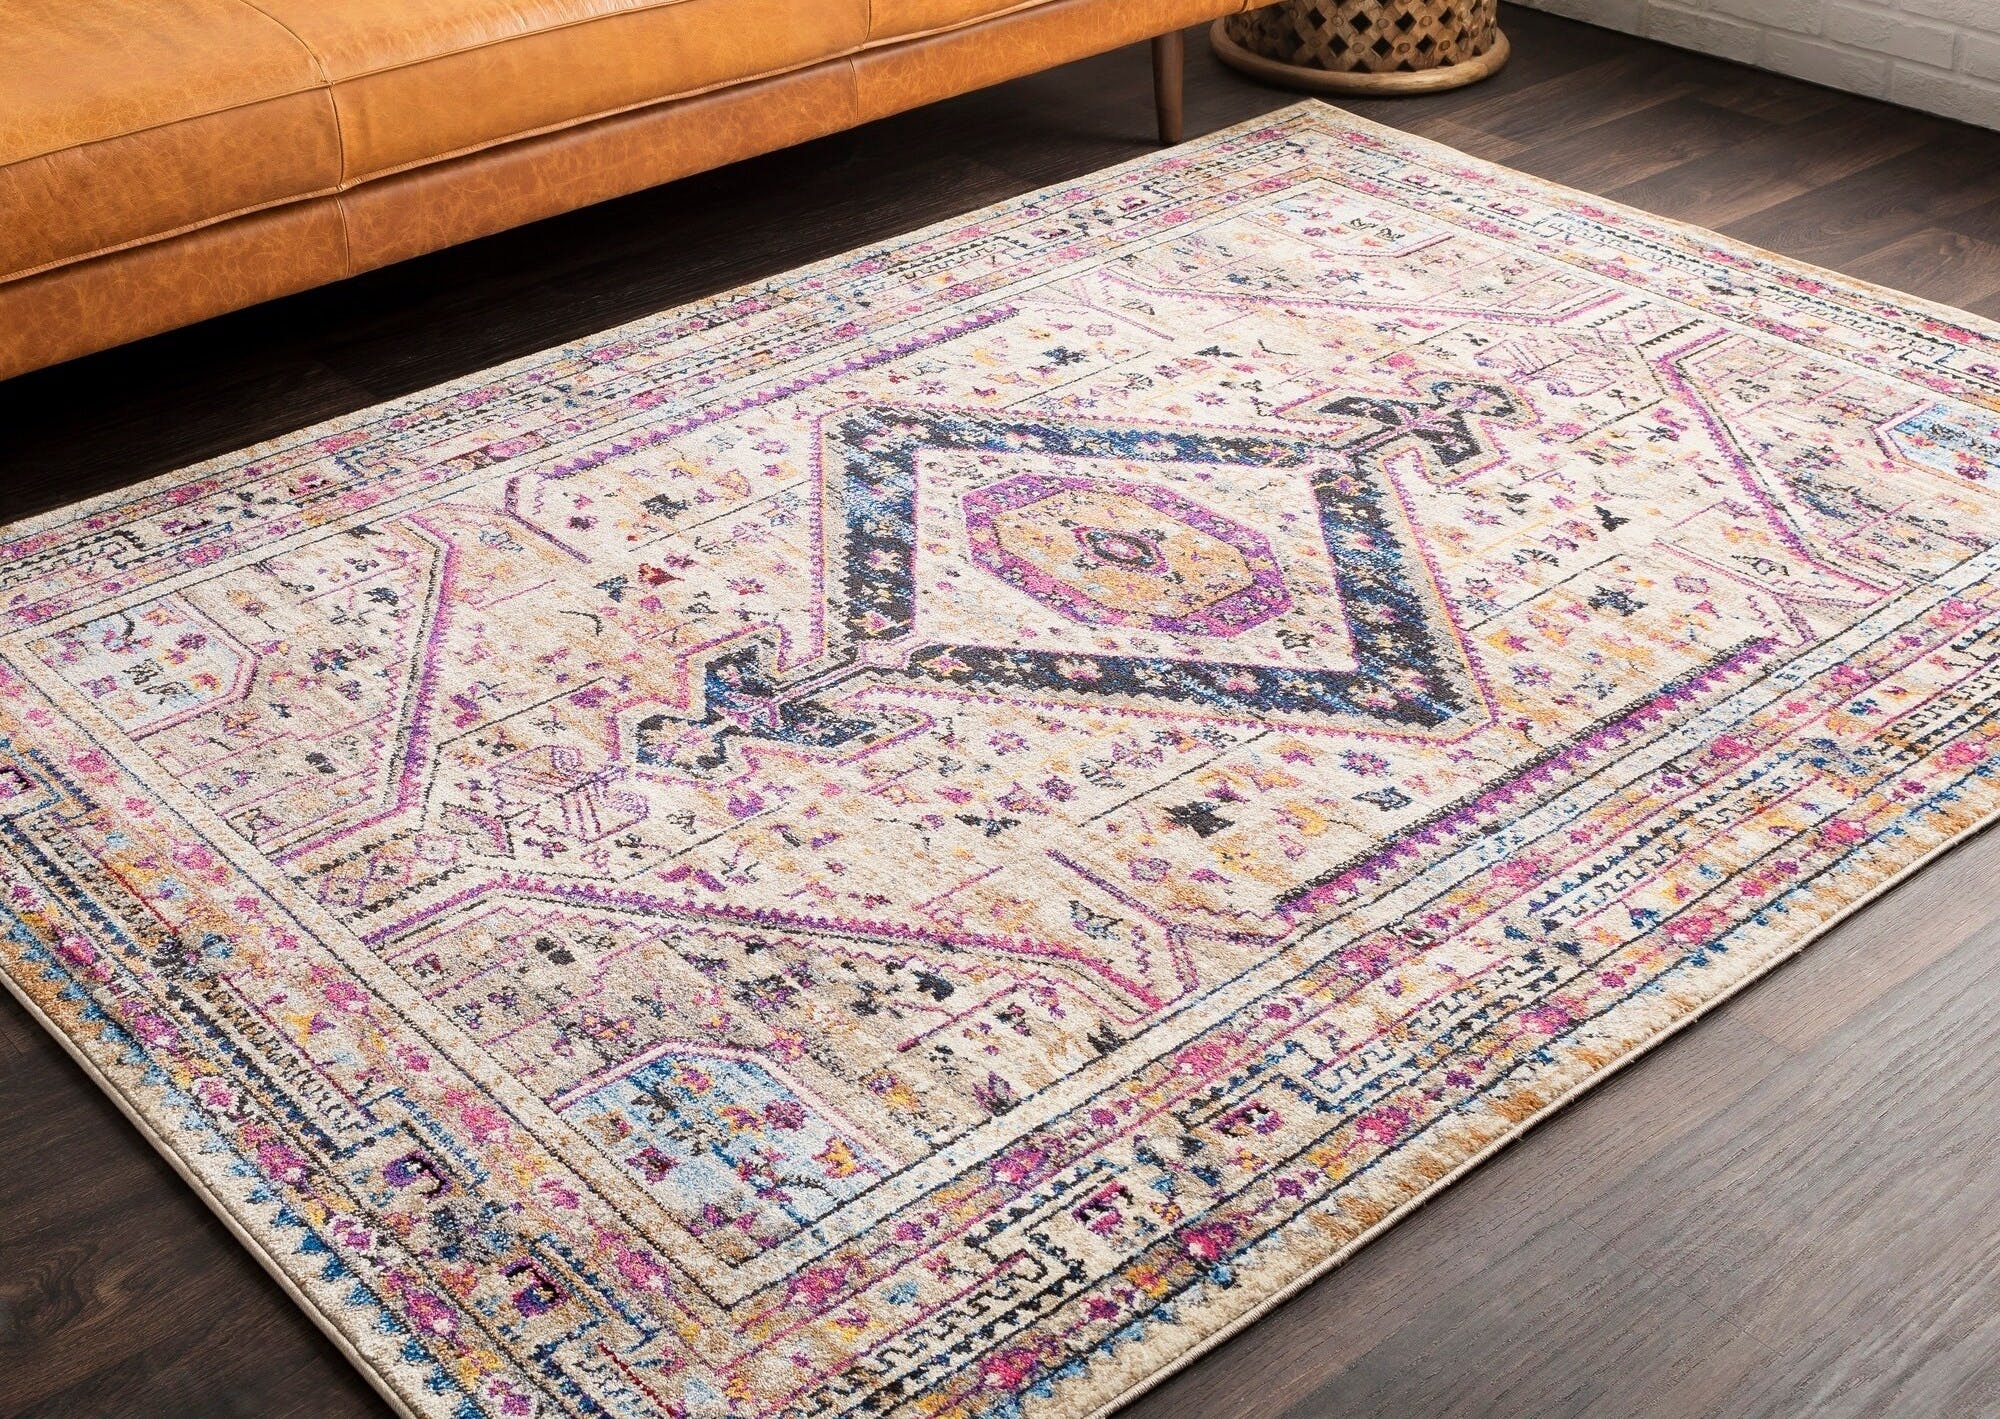 Area Rug Blowout On Wayfair 5 X8 Area Rugs Only 40 The Krazy Coupon Lady